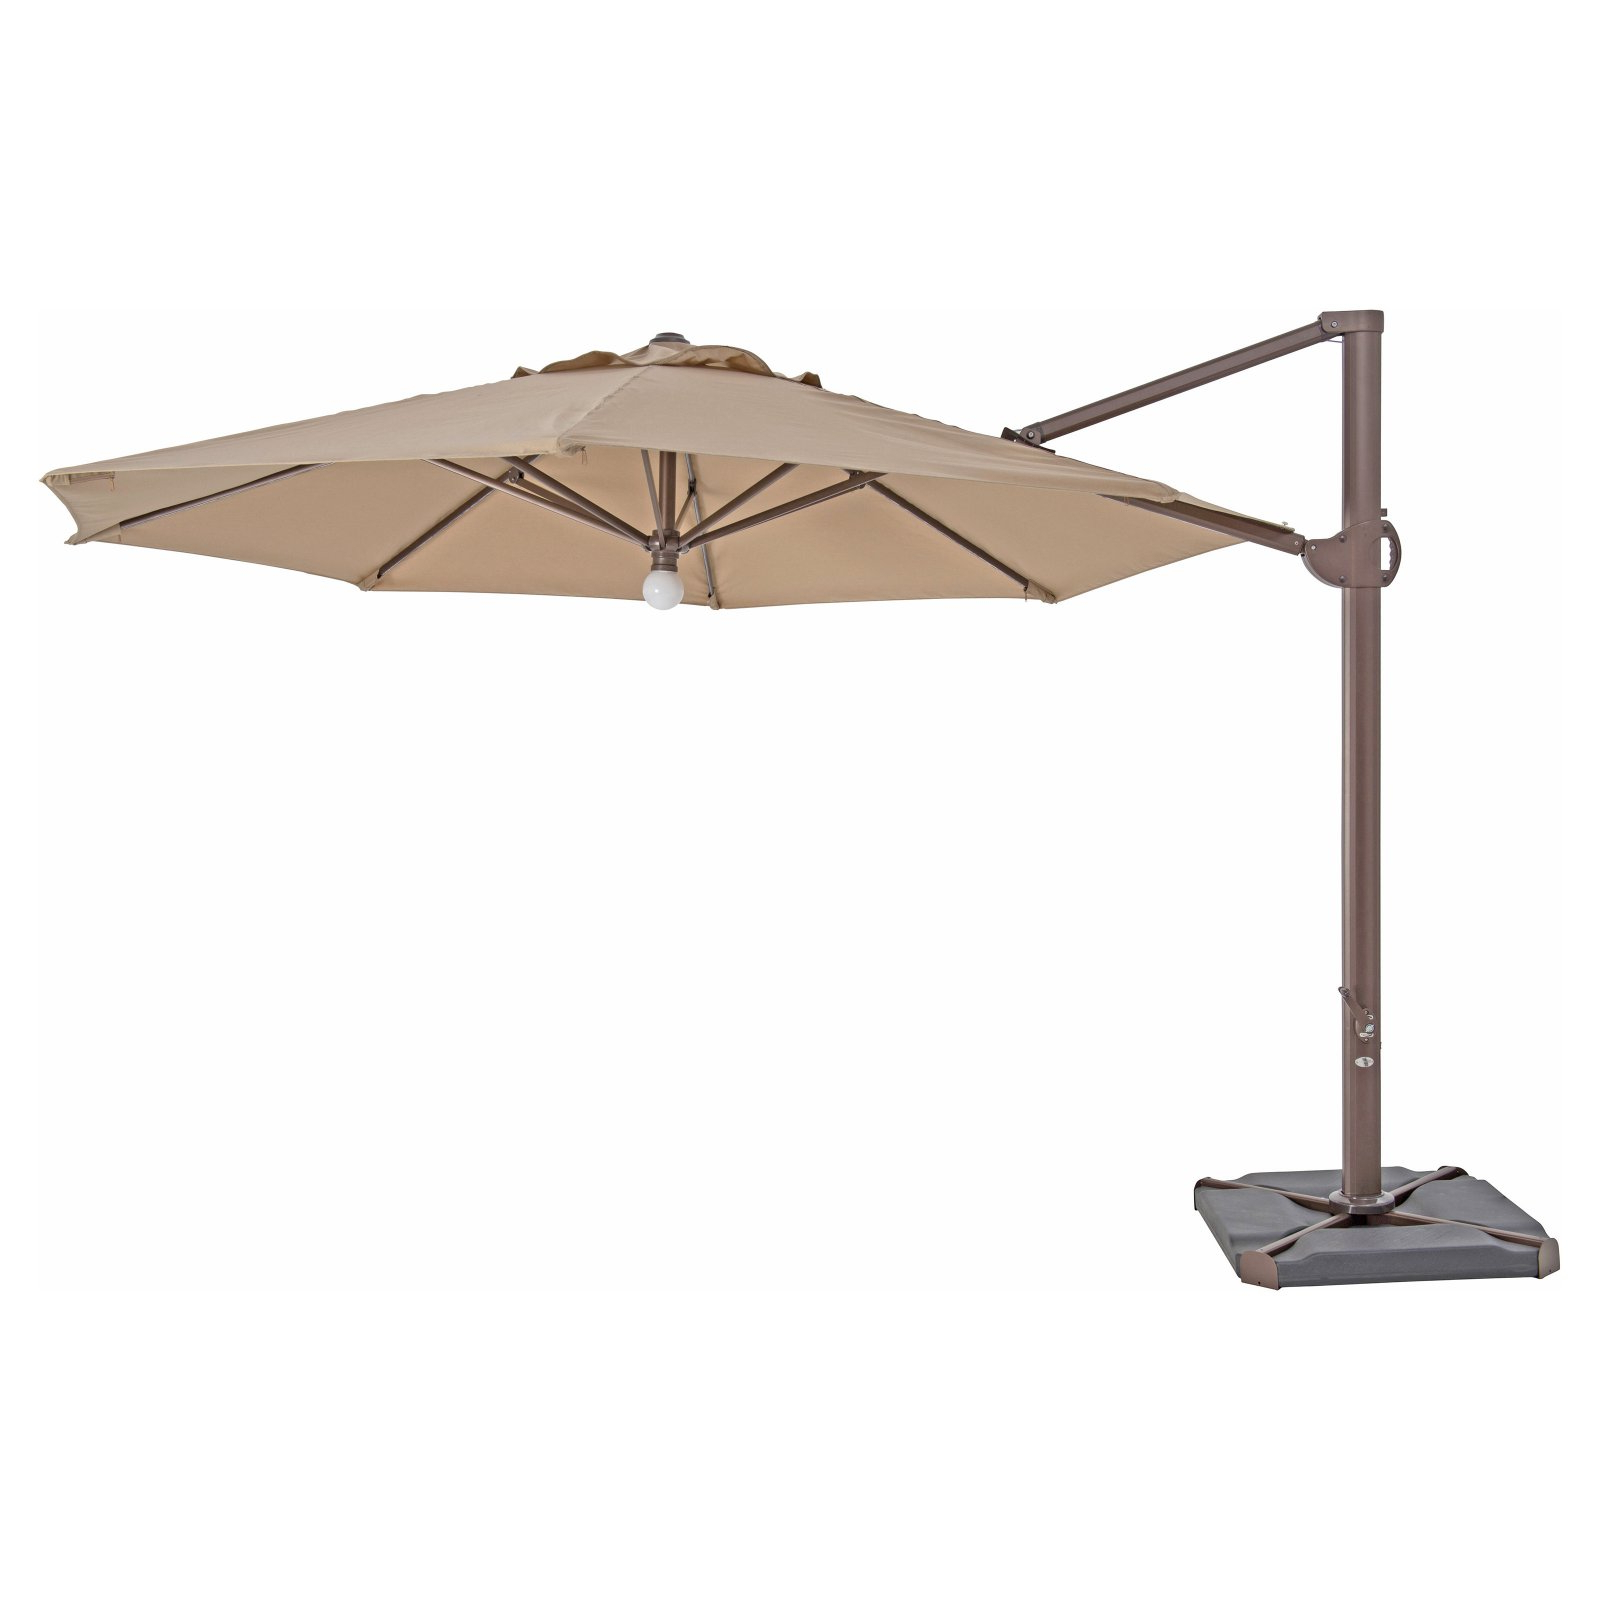 2019 Jaelynn Cantilever Umbrellas Regarding Trueshade Plus 11.5 X 11.5 Ft. Lighted Octagon Aluminum Cantilever (Gallery 13 of 20)